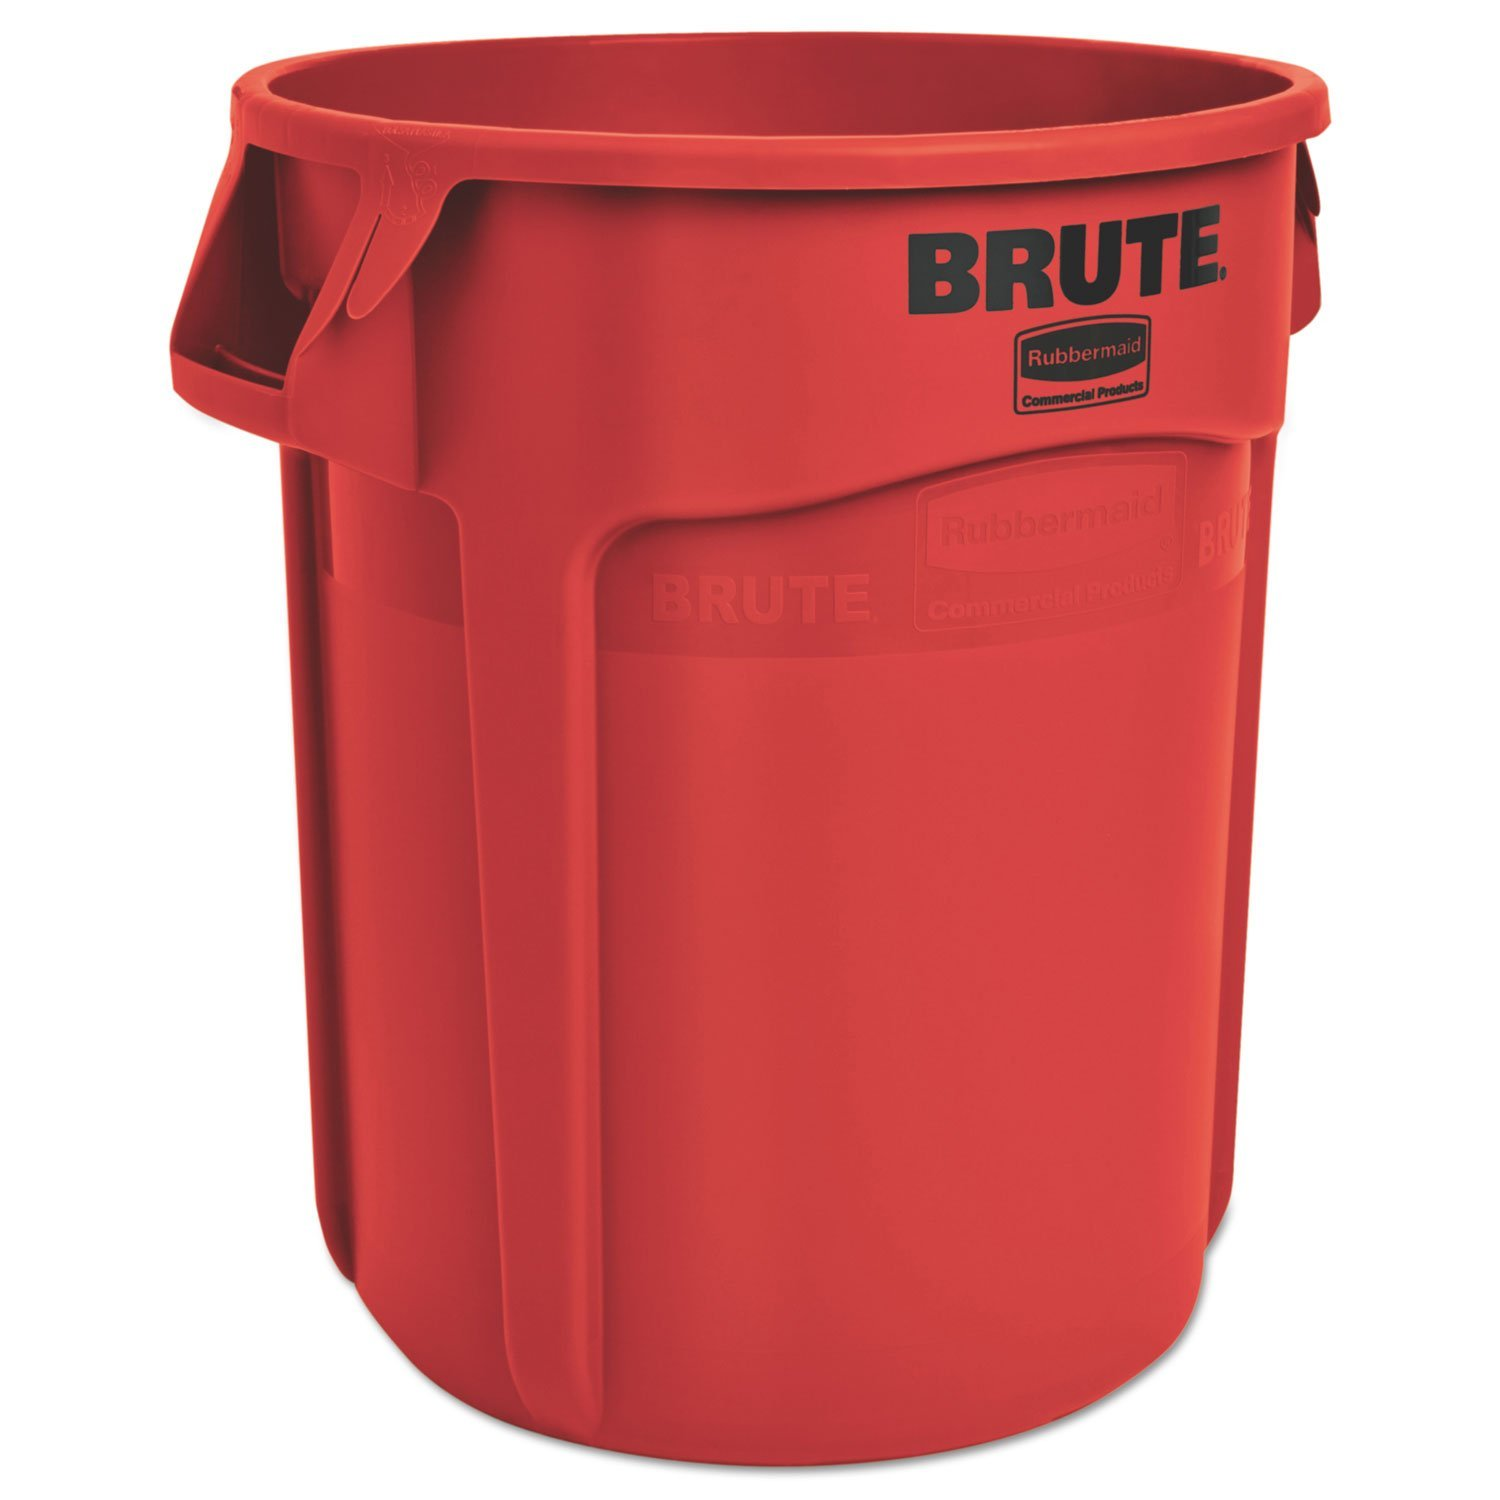 Rubbermaid 2620REDCT Round Brute Container, Plastic, 20 gal, Red, 6/Carton